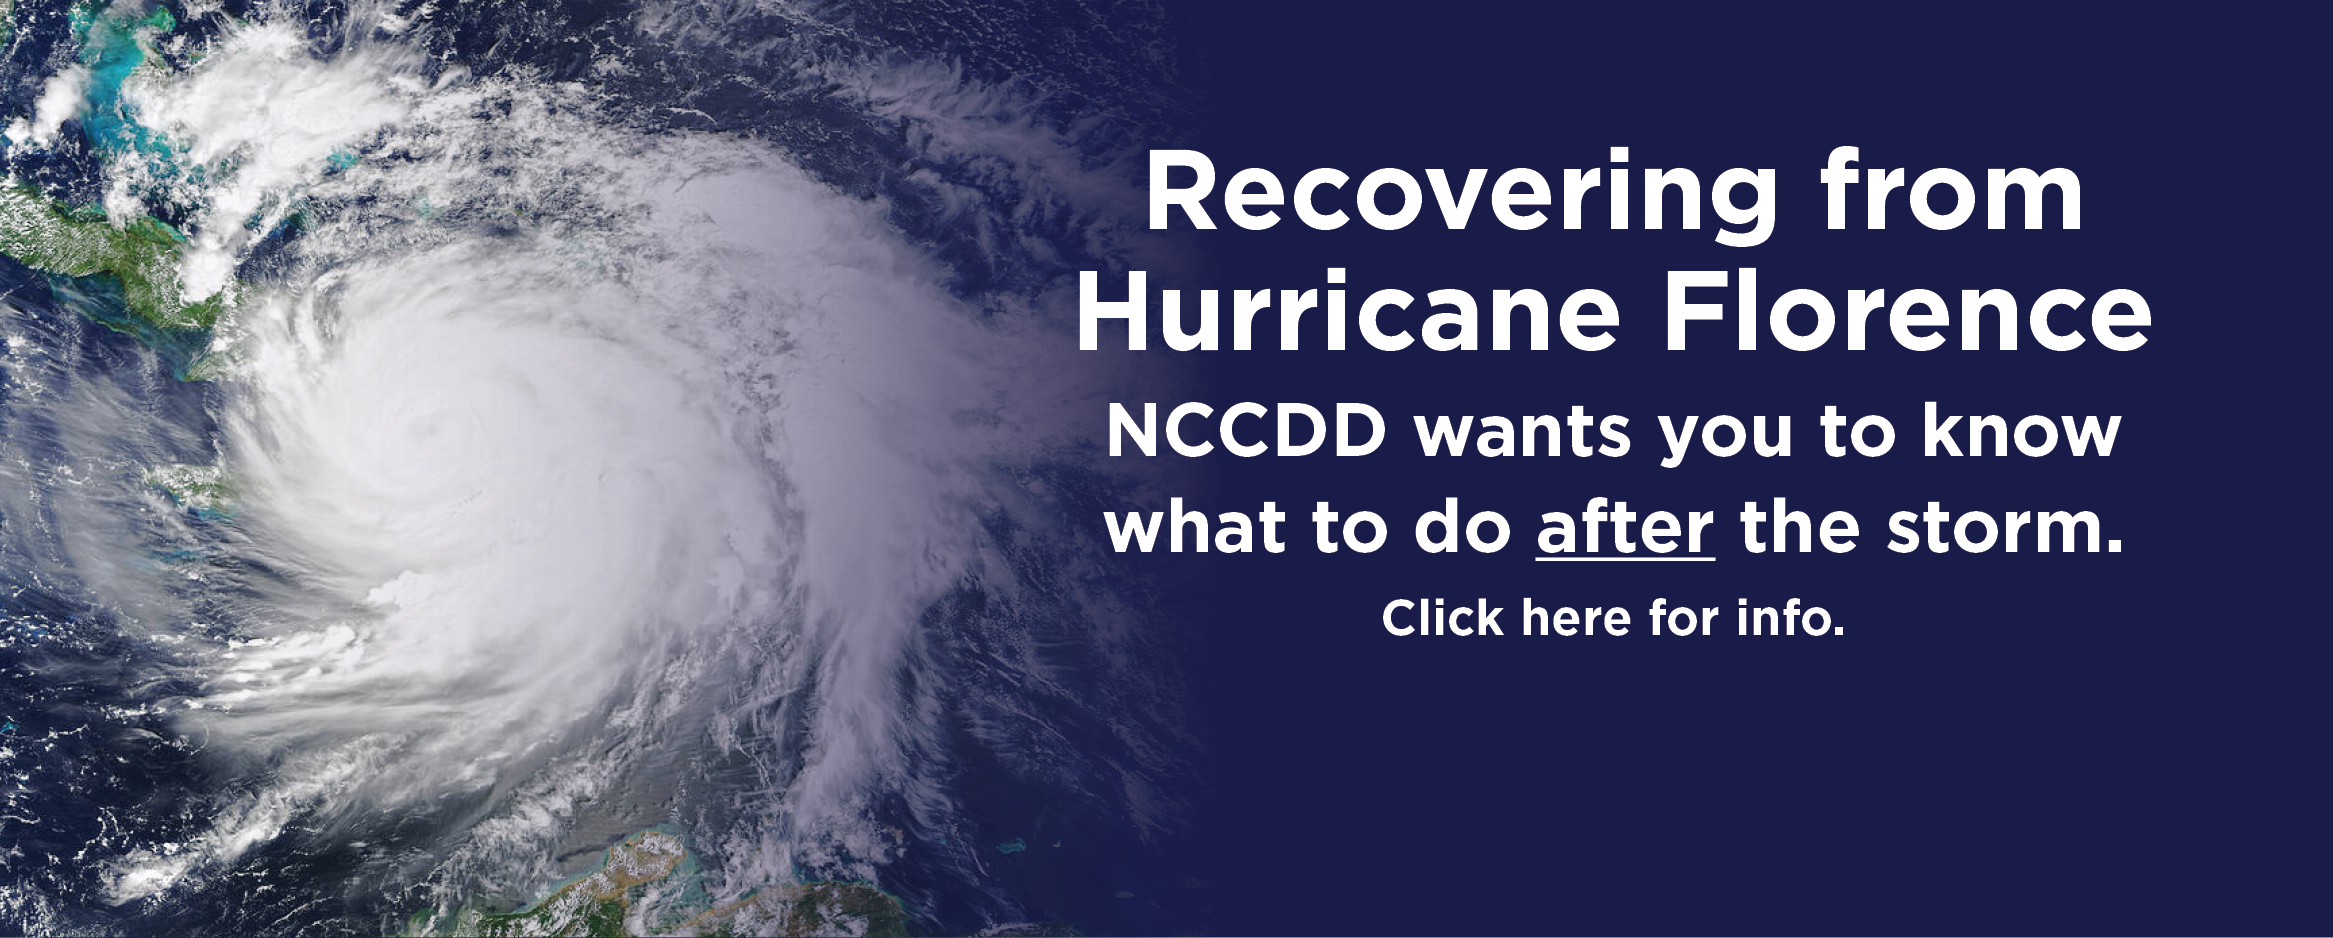 Recovering from Hurricane Florence: NCCDD wants you to know what to do after the storm. Click here for info.